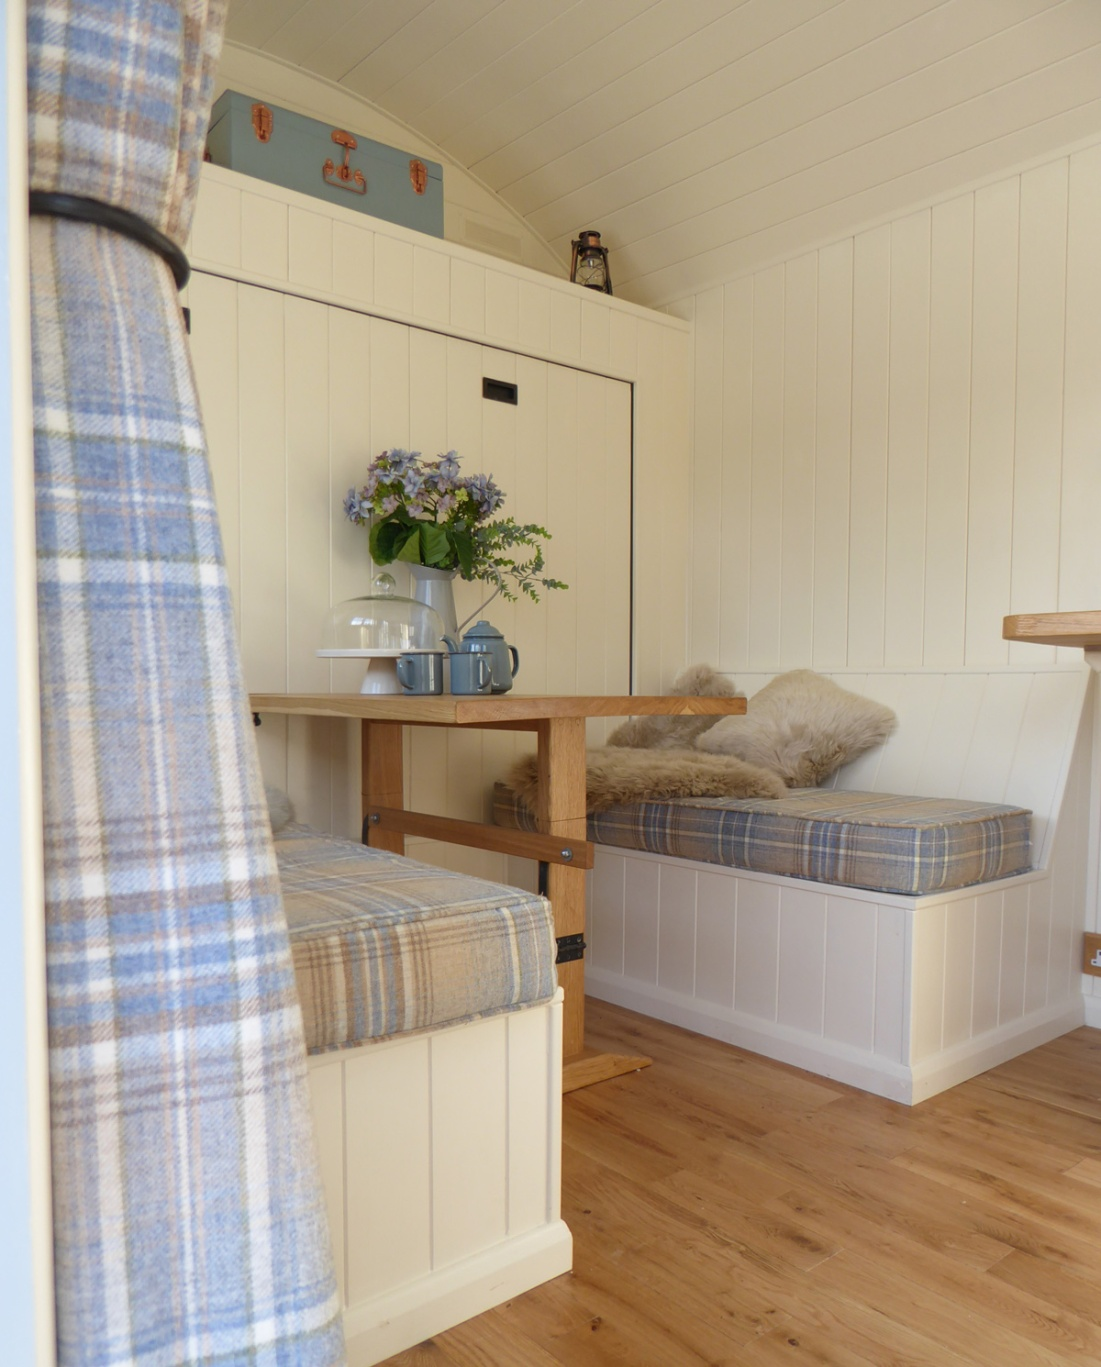 Wall bed in a shepherd hut